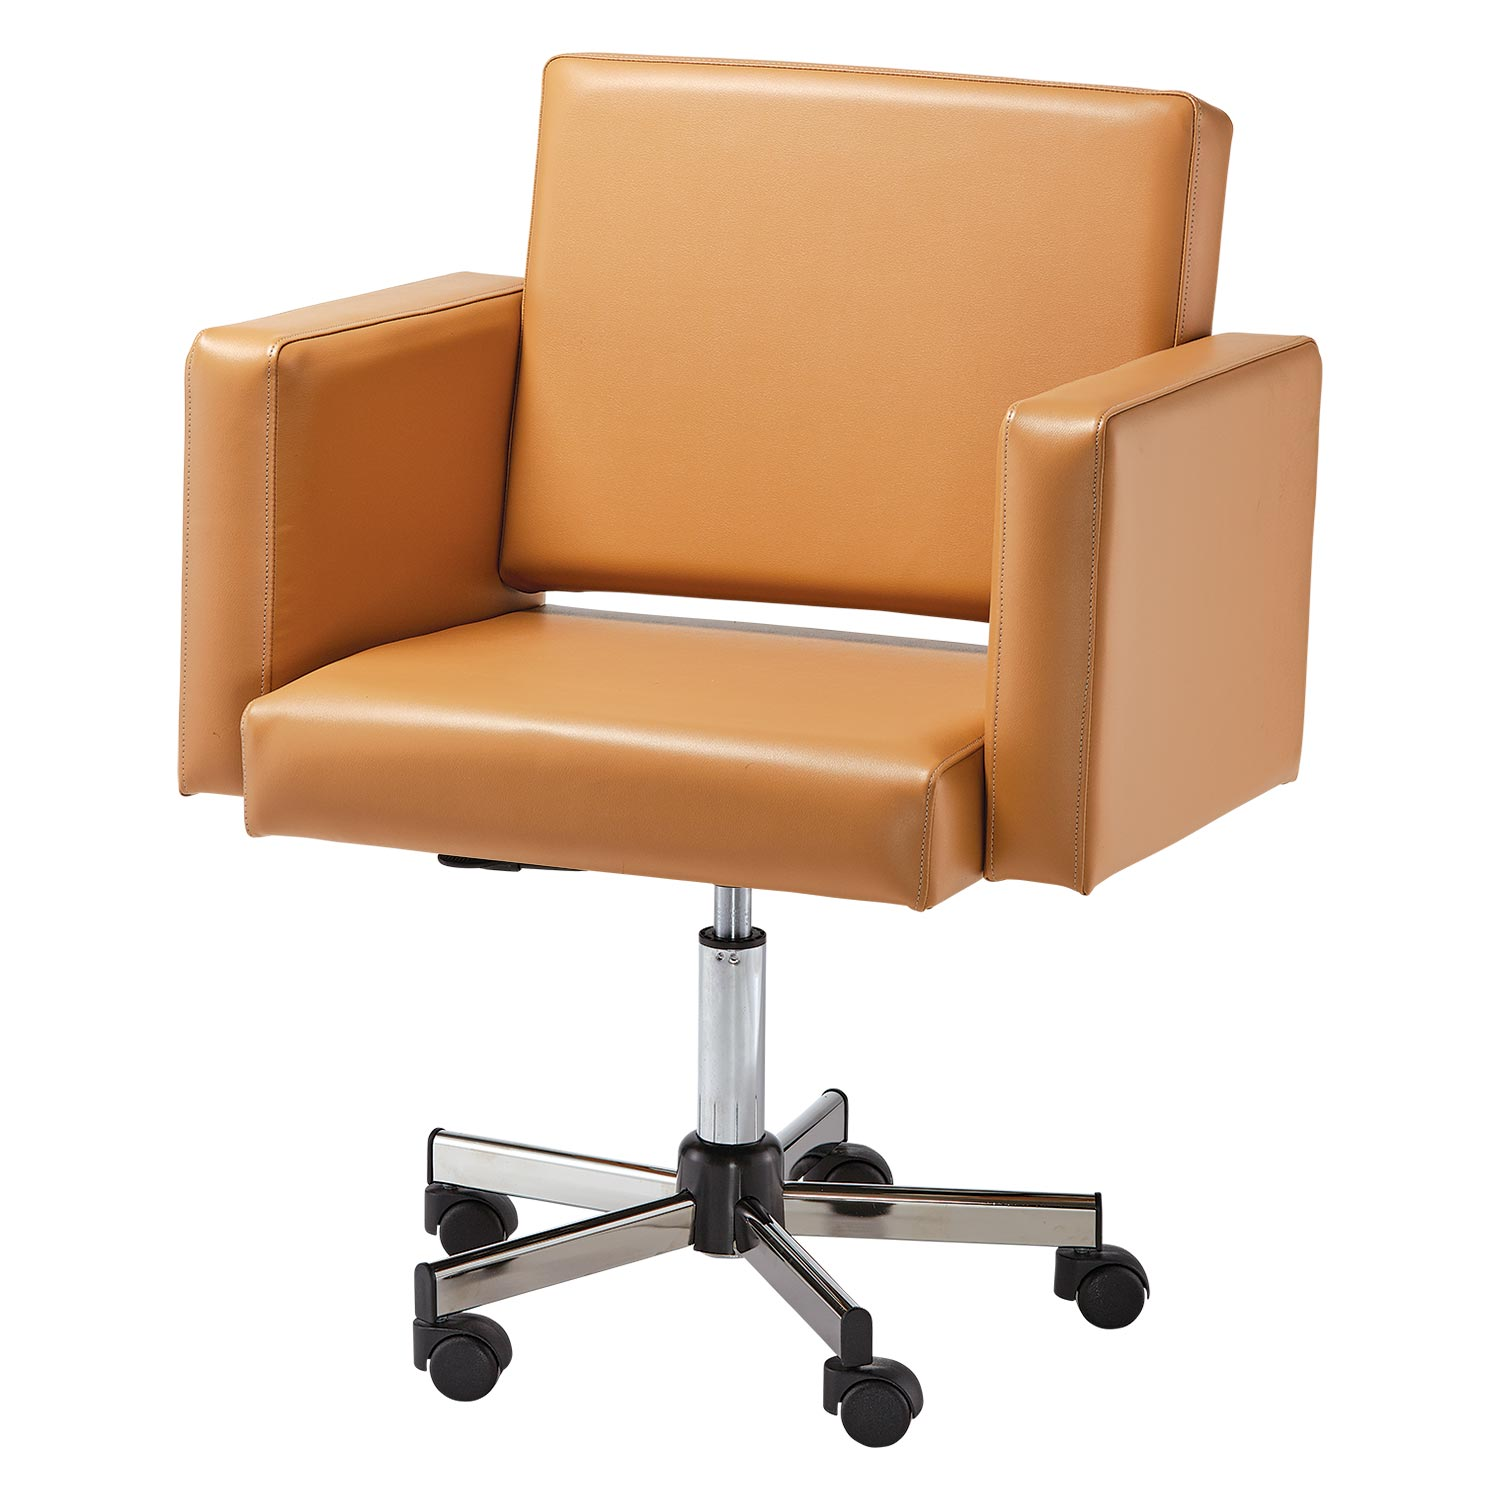 Pibbs 3492 Cosmo Client Chair alternative product image 1